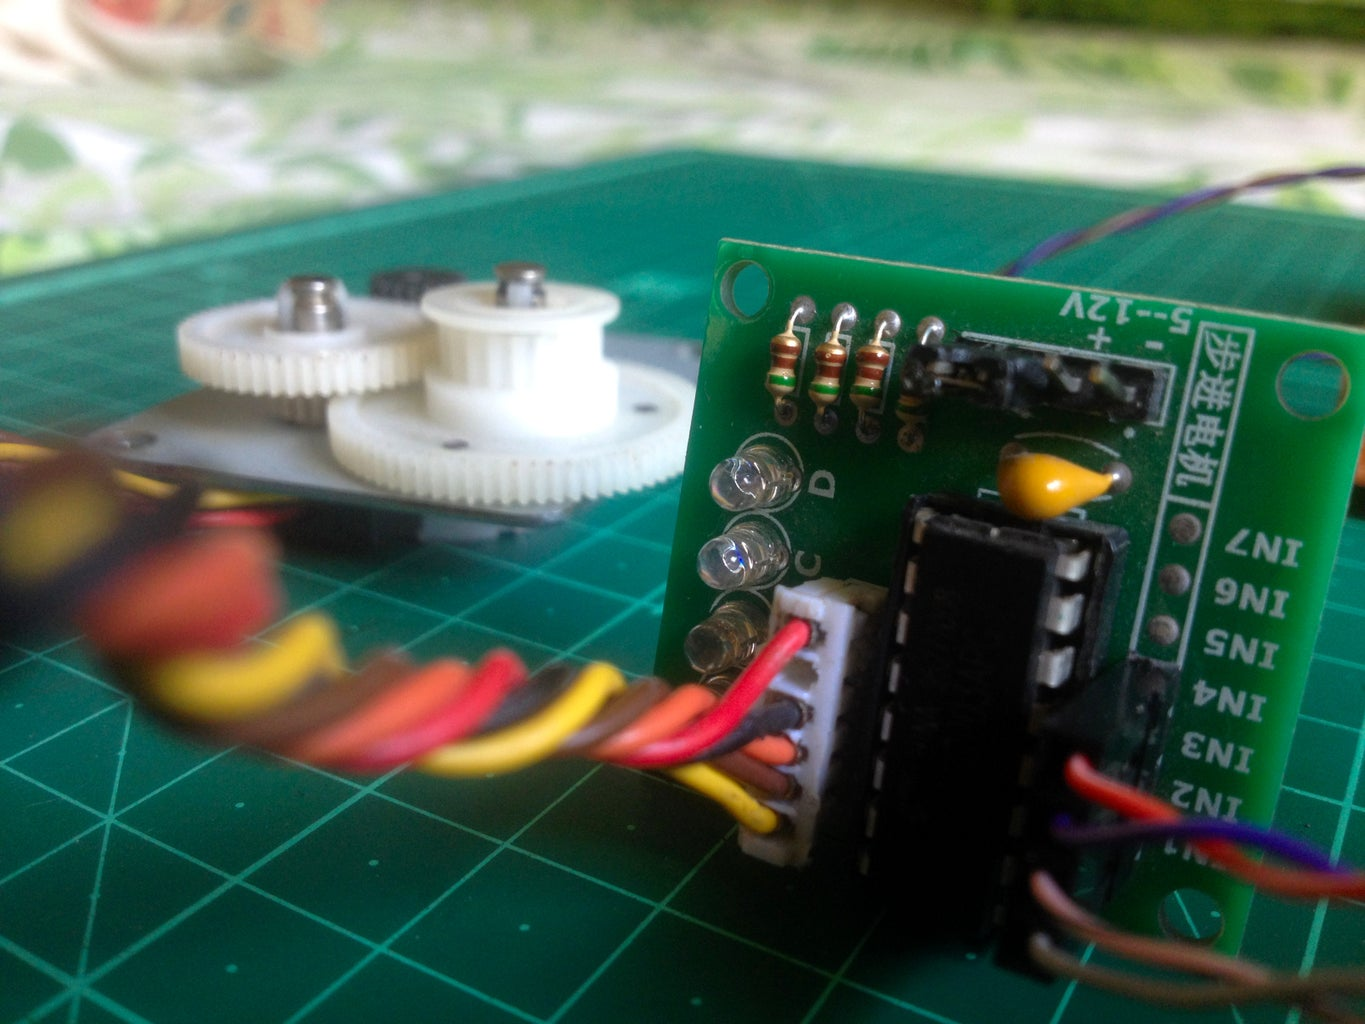 Connect the Stepper Motor to Be Driven to the Driver